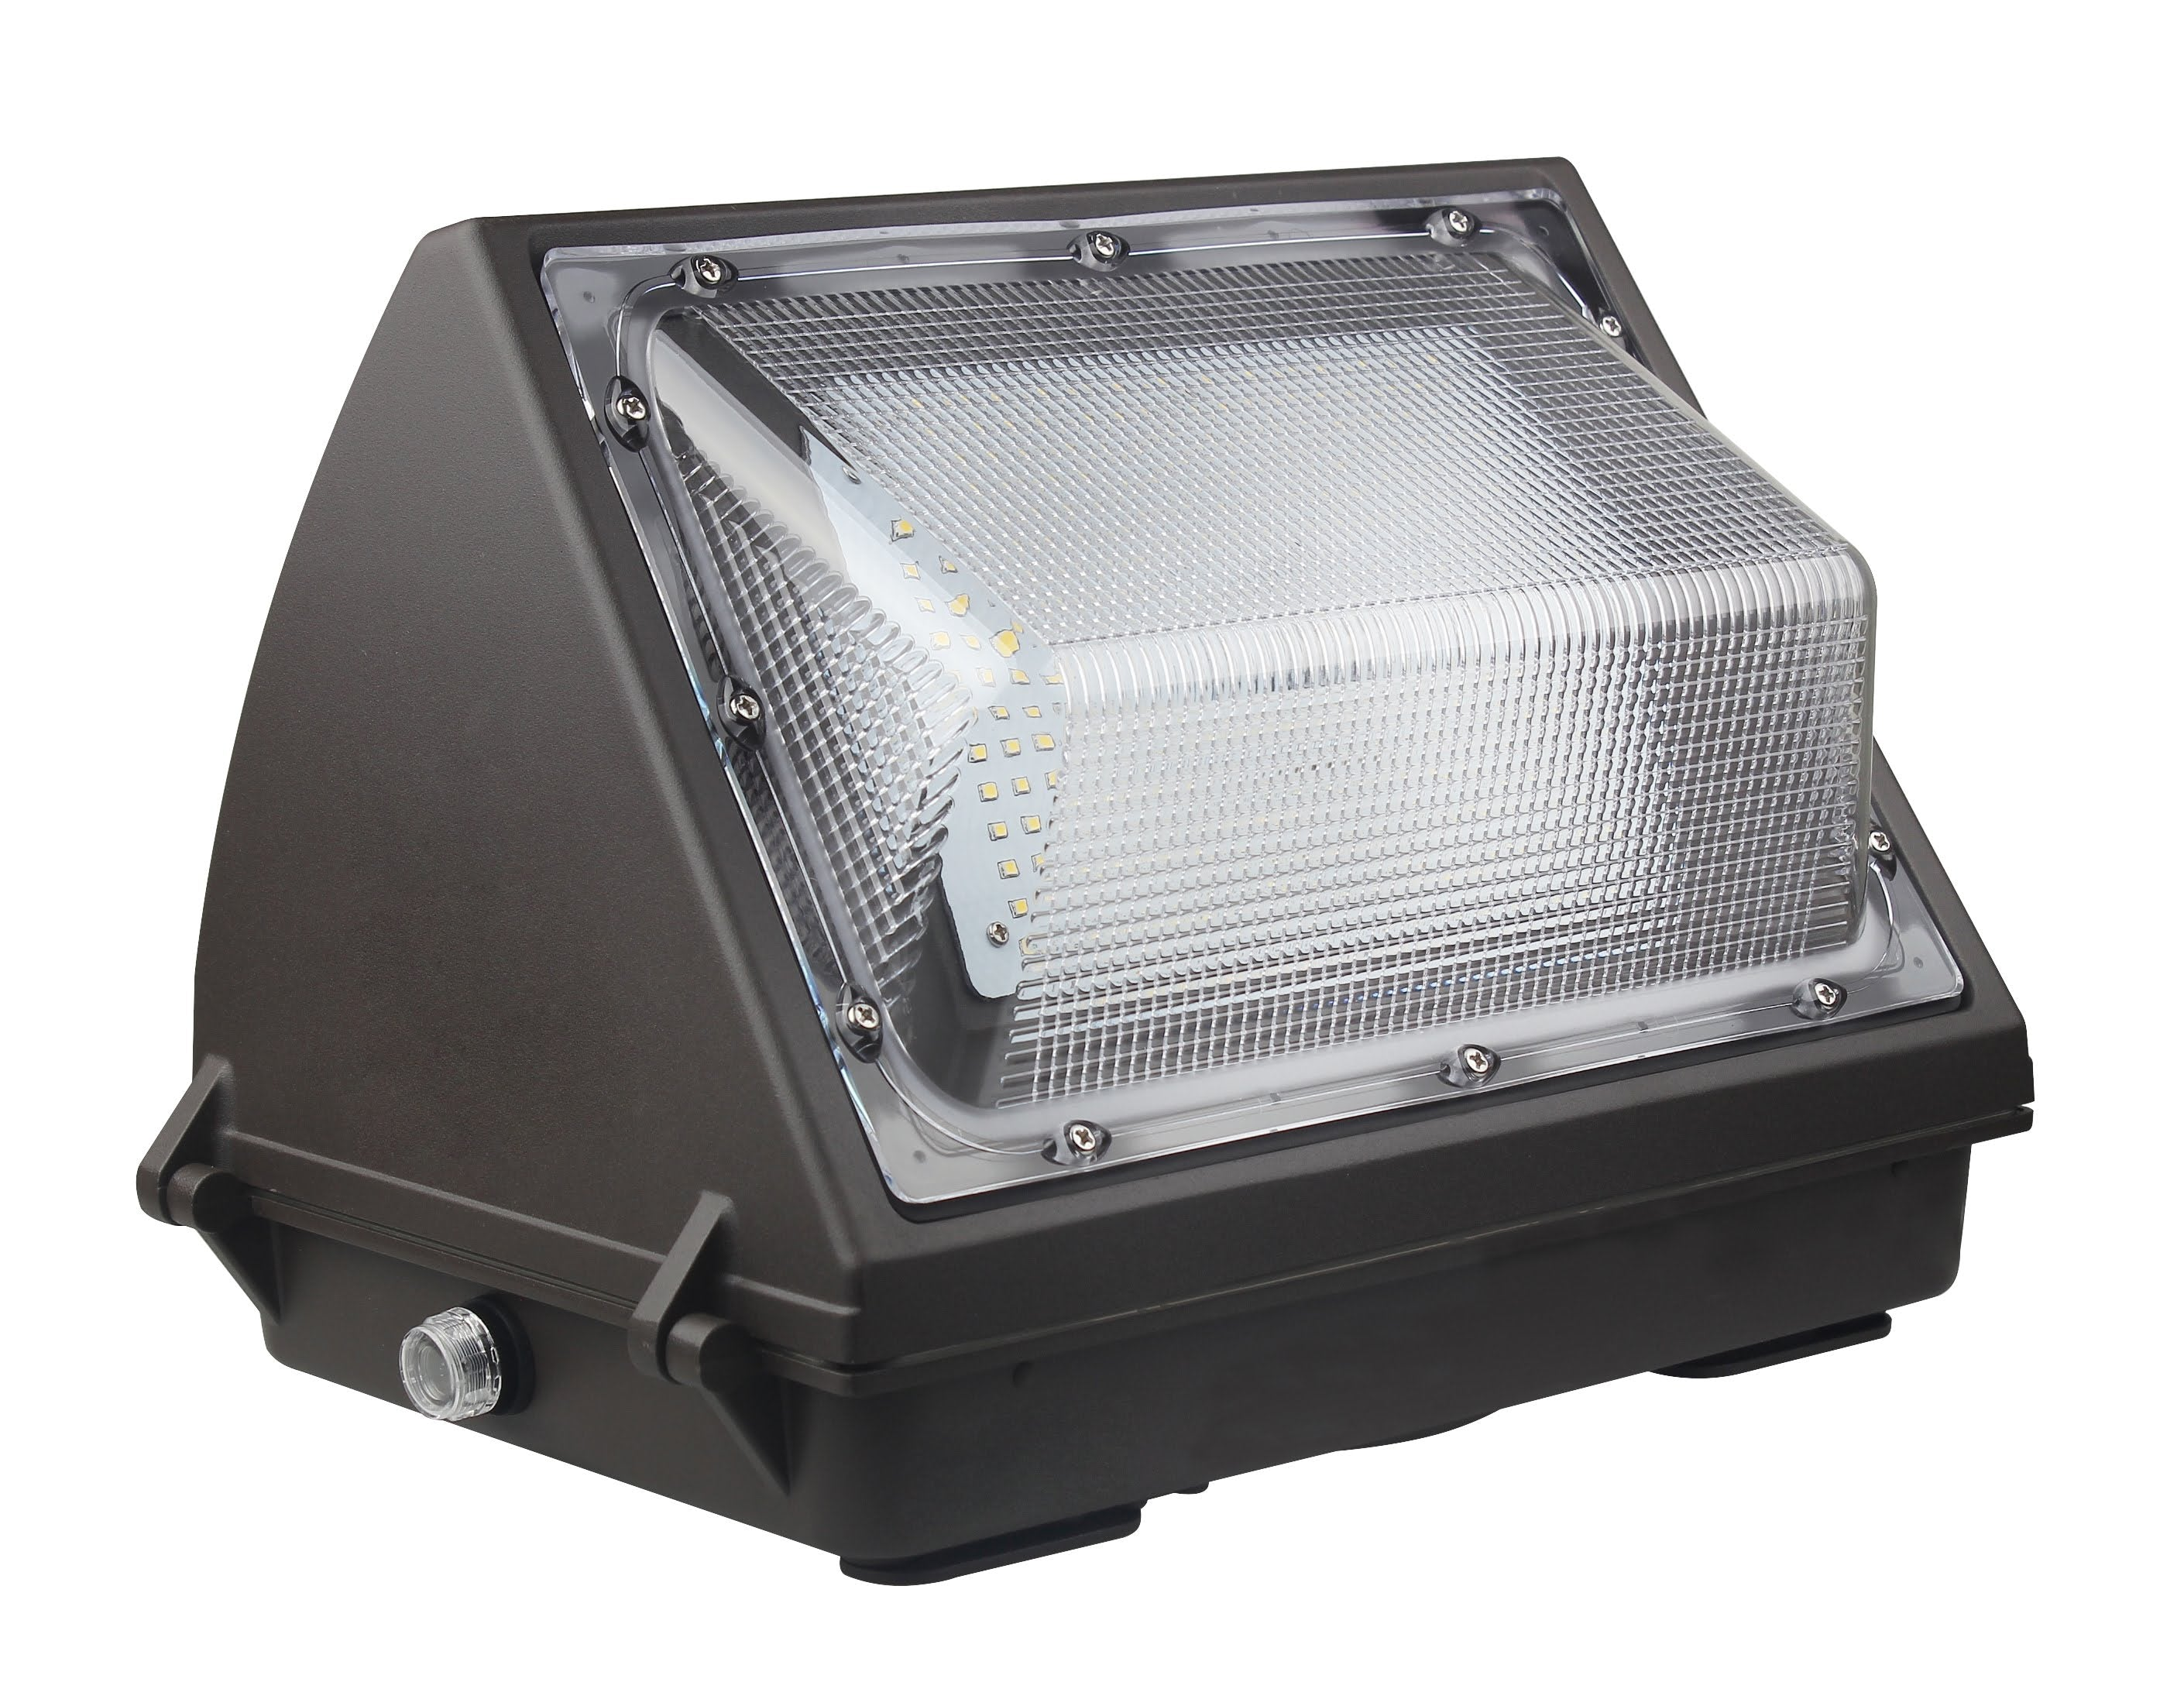 LED STANDARD WALL PACK 55W - 6,884 LUMENS UL & DLC Premium - 5 YEAR WARRANTY